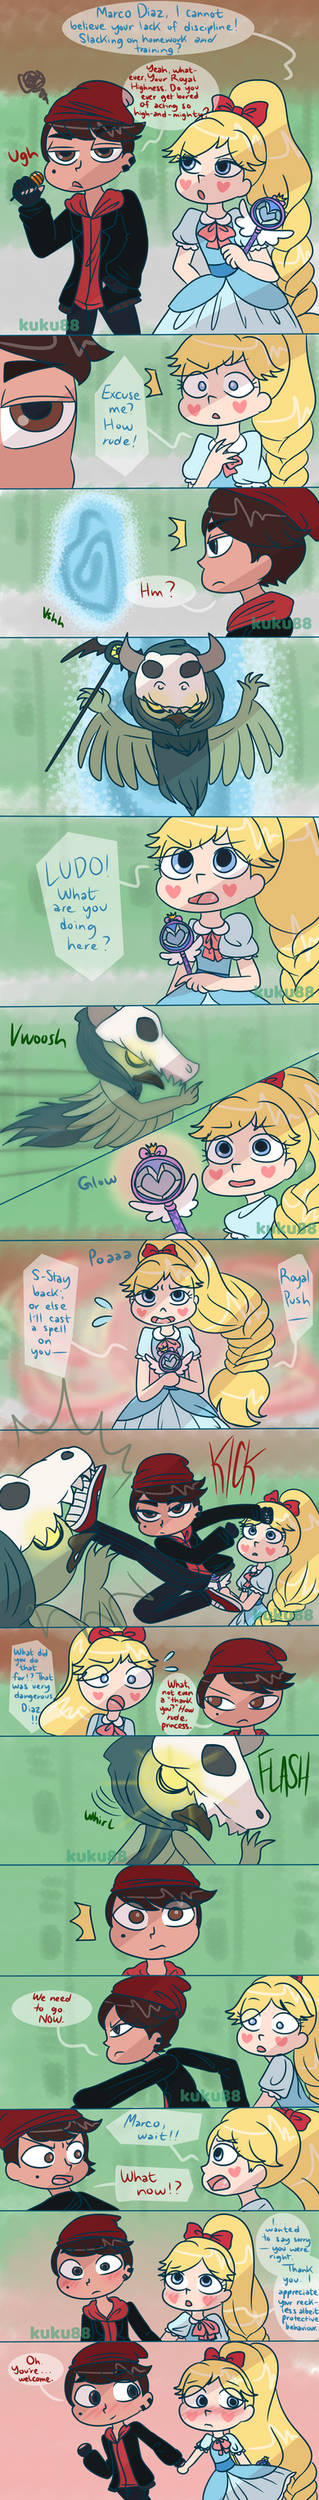 Starco Week 2019: Day 2: Bad Boy x Princess AU by kuku88 on DeviantArt